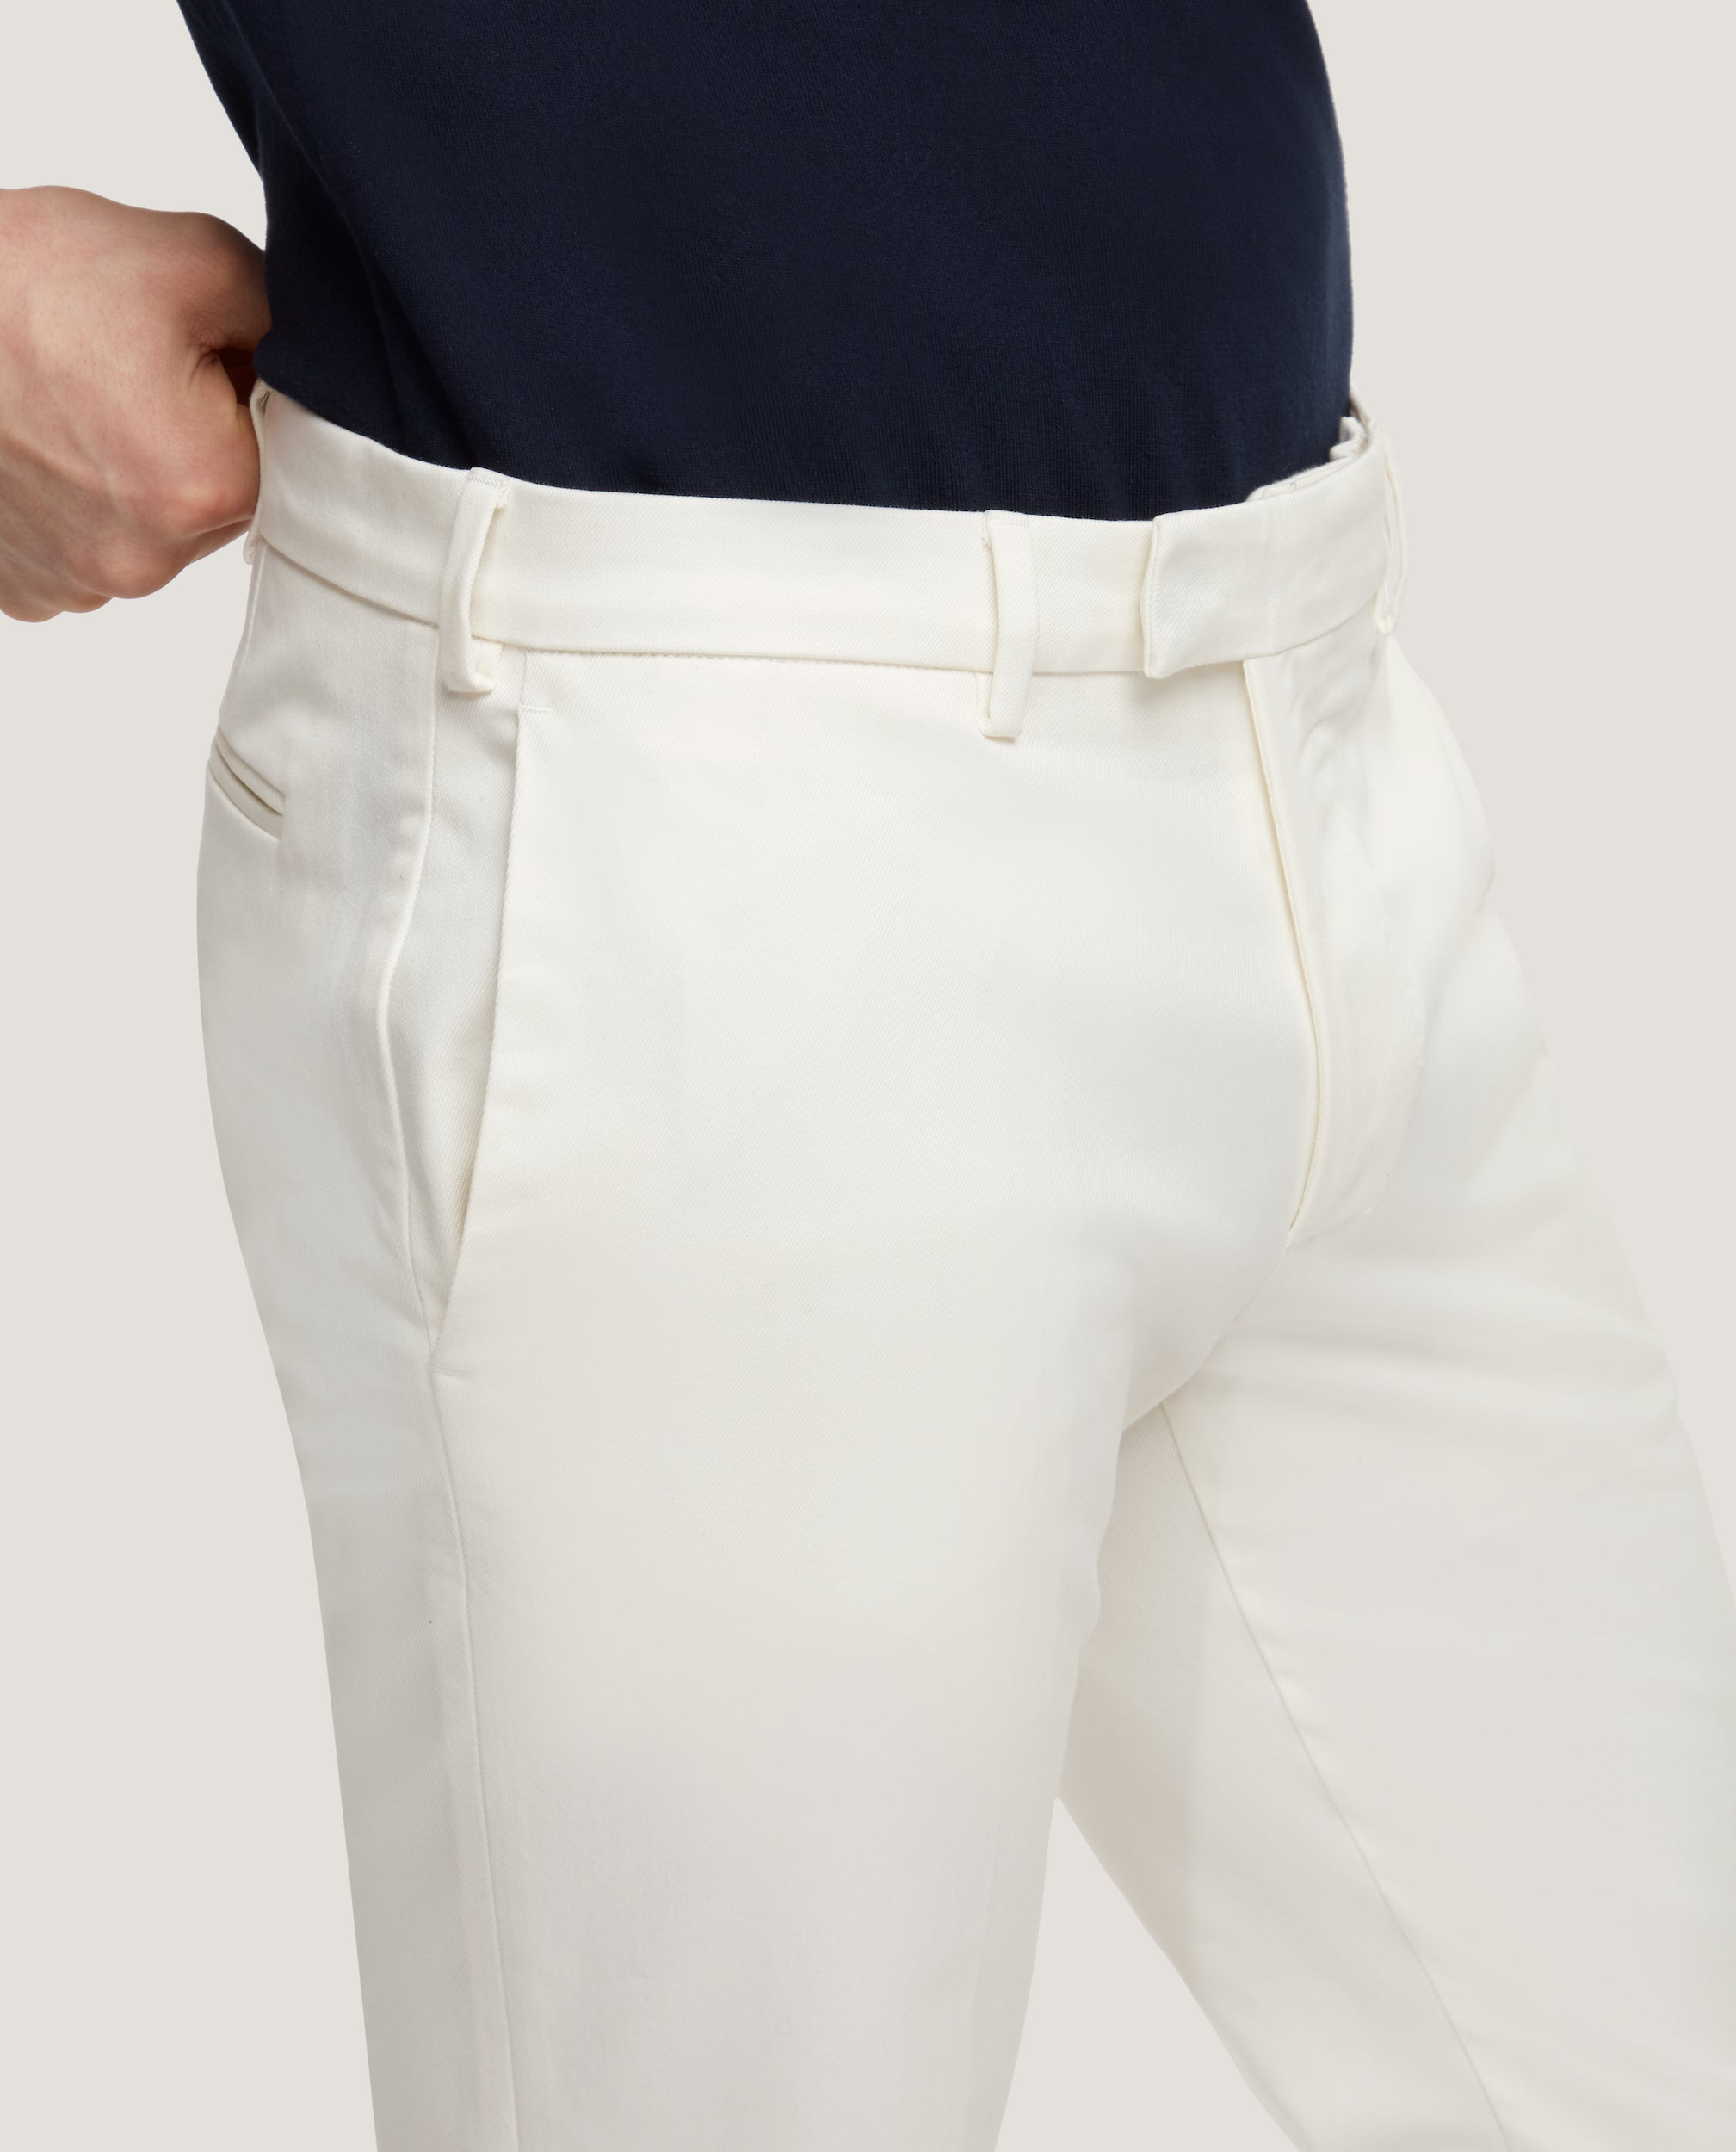 GEHRY Chino trousers | Slim fit | Cotton twill